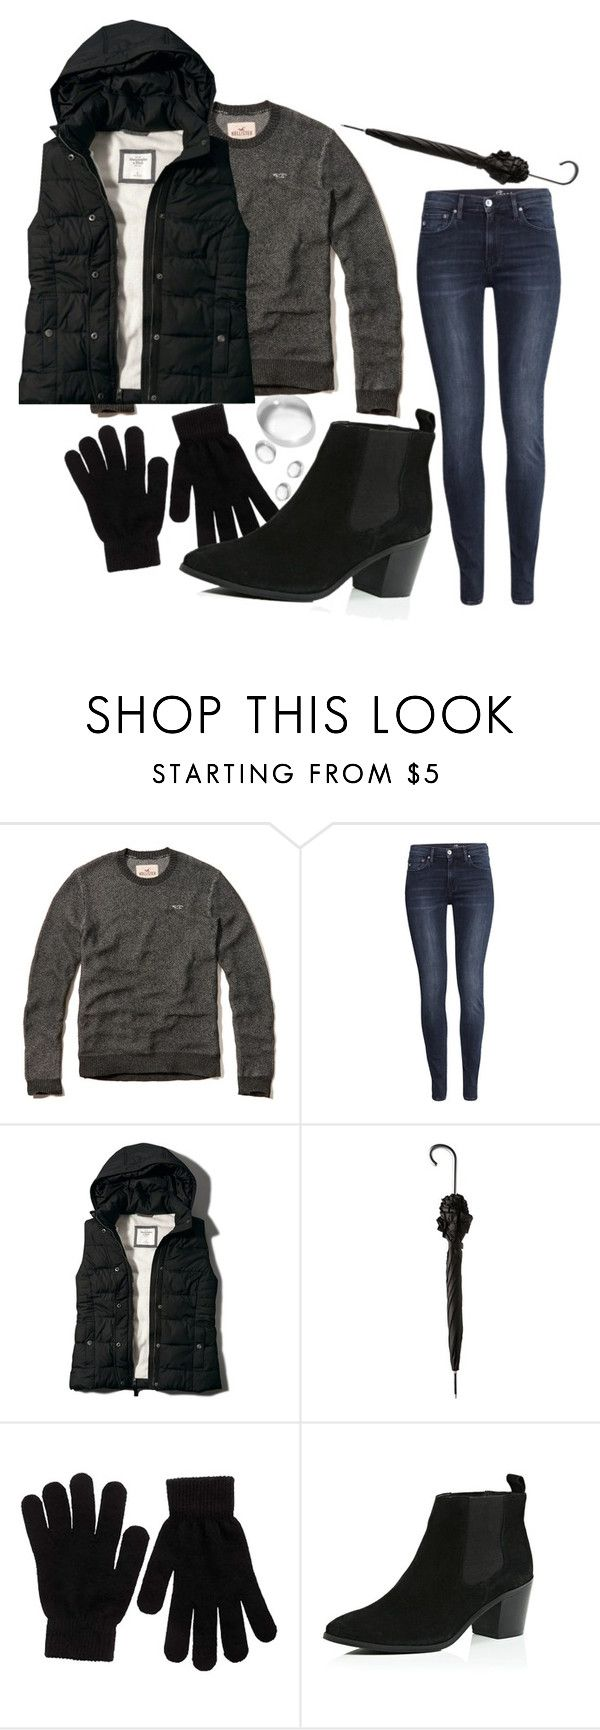 """""""now it's gonna be no rain for like half a year"""" by moria801 ❤ liked on Polyvore featuring H&M, Abercrombie & Fitch, Totes, Pieces and River Island"""